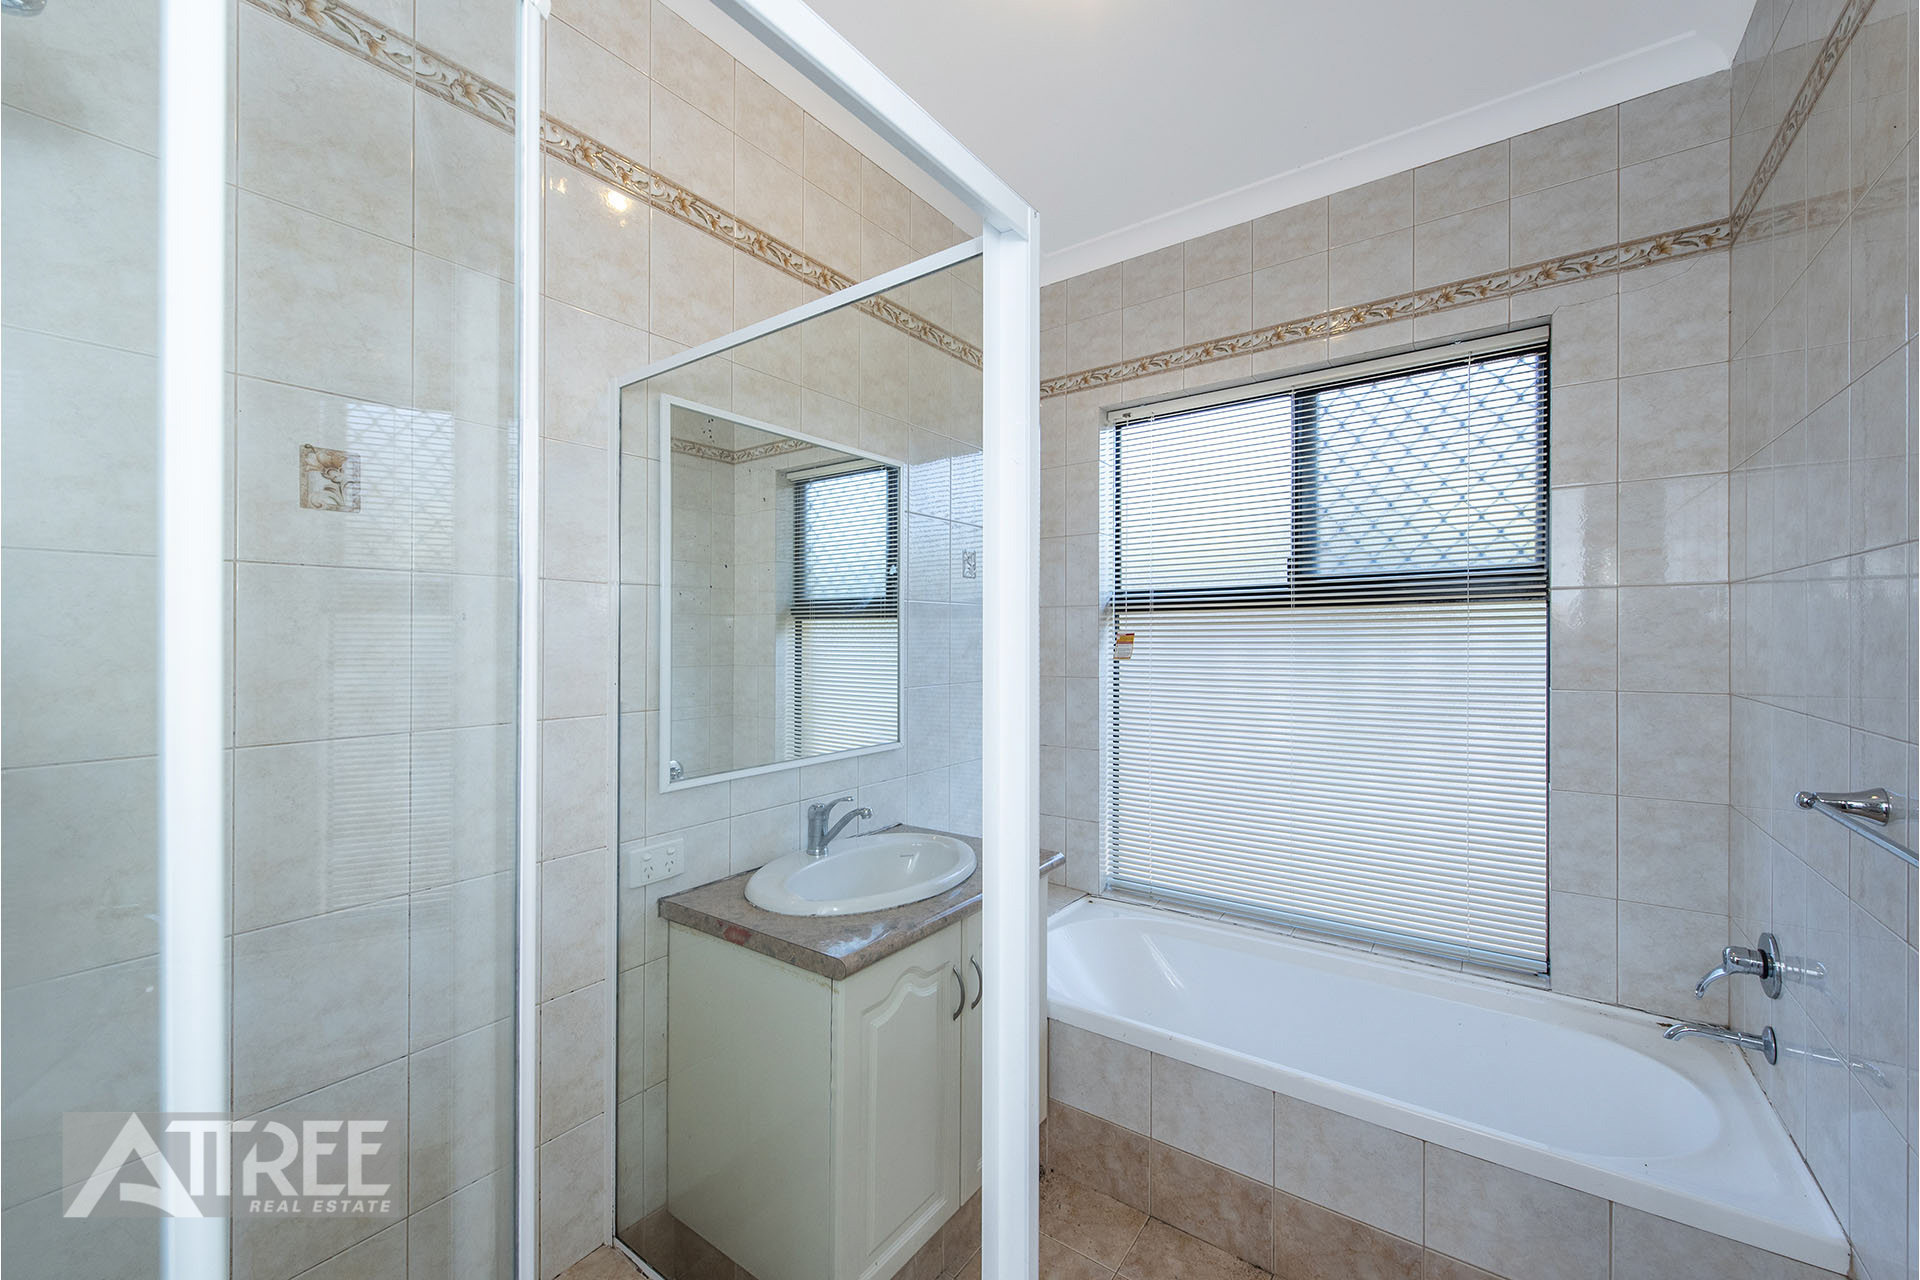 Property for sale in CANNING VALE, 22 Parkland Trail : Attree Real Estate